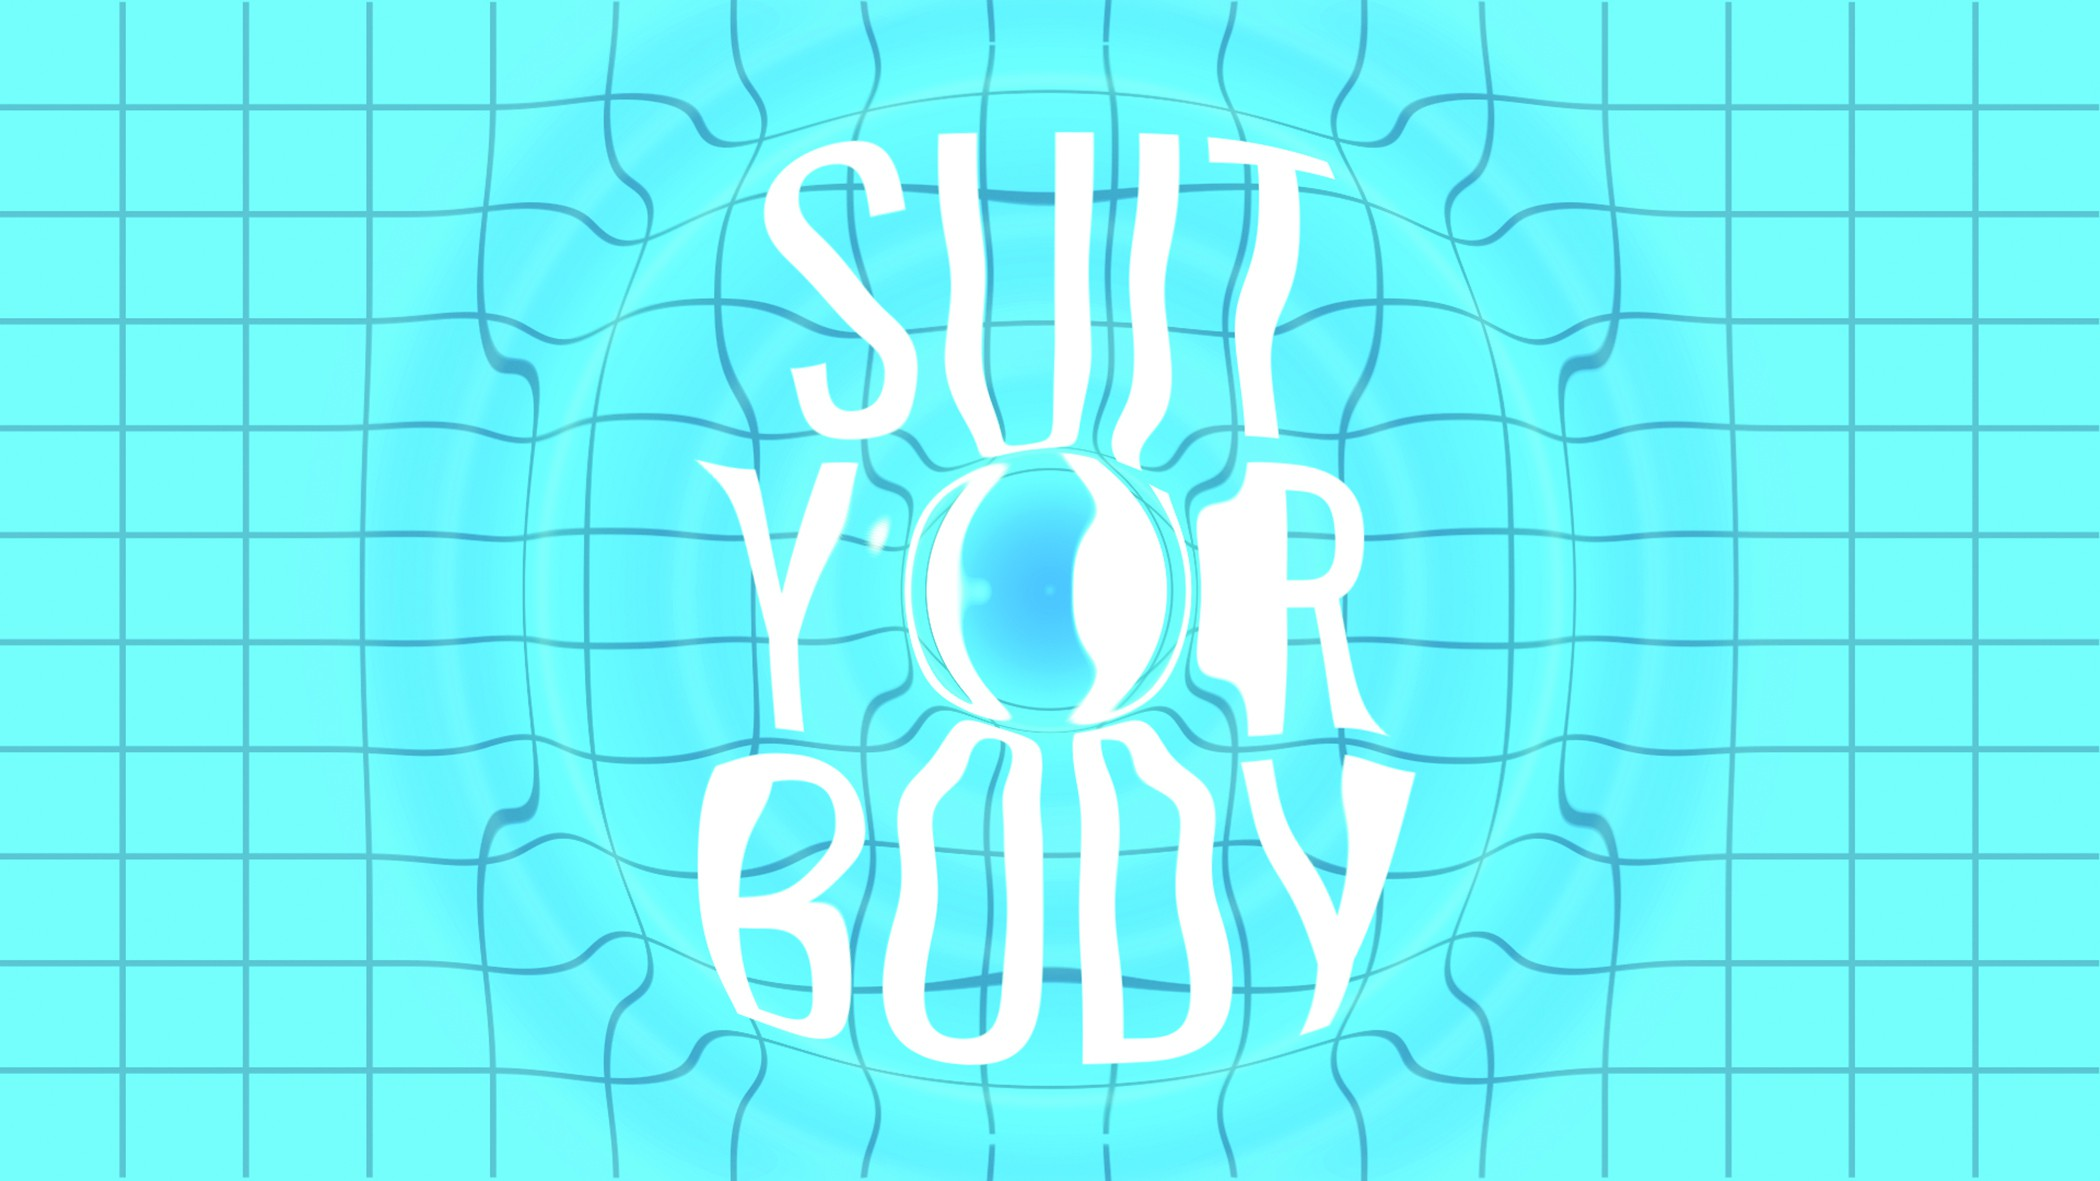 04-2020-FuF-Suit_Your_Body-Keyvisual-Quer-CMYK-300dpi